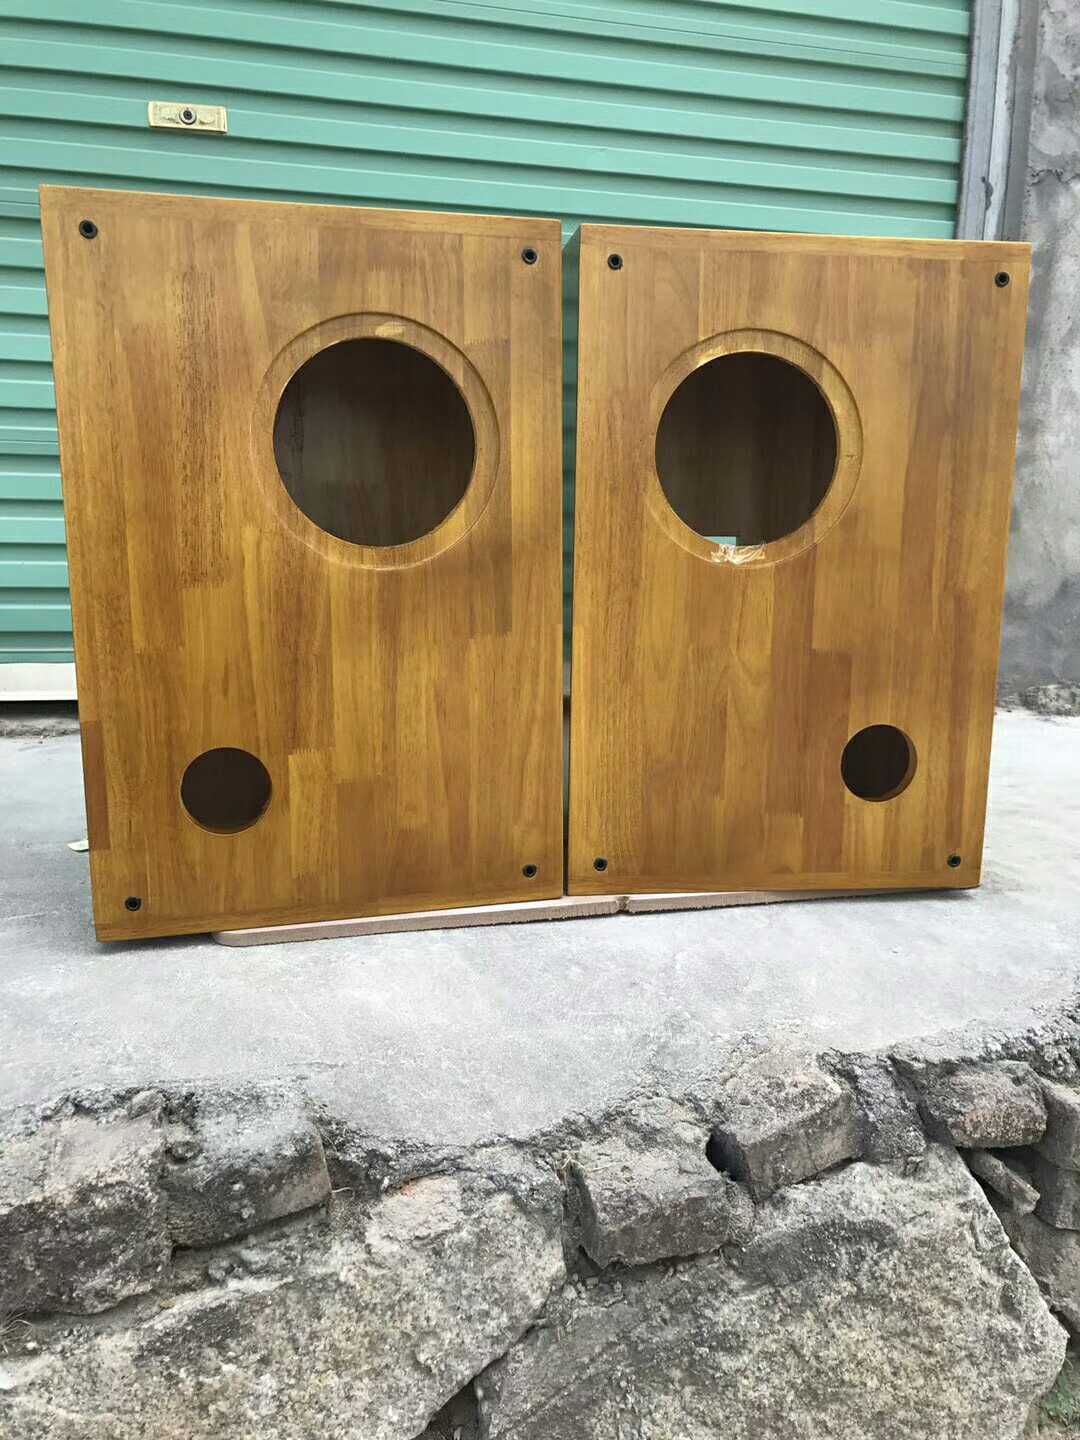 Custom morning glory 8 inch HIFI MG-F8 full frequency loudspeaker unit supporting large wood Bookshelf Speakers empty body